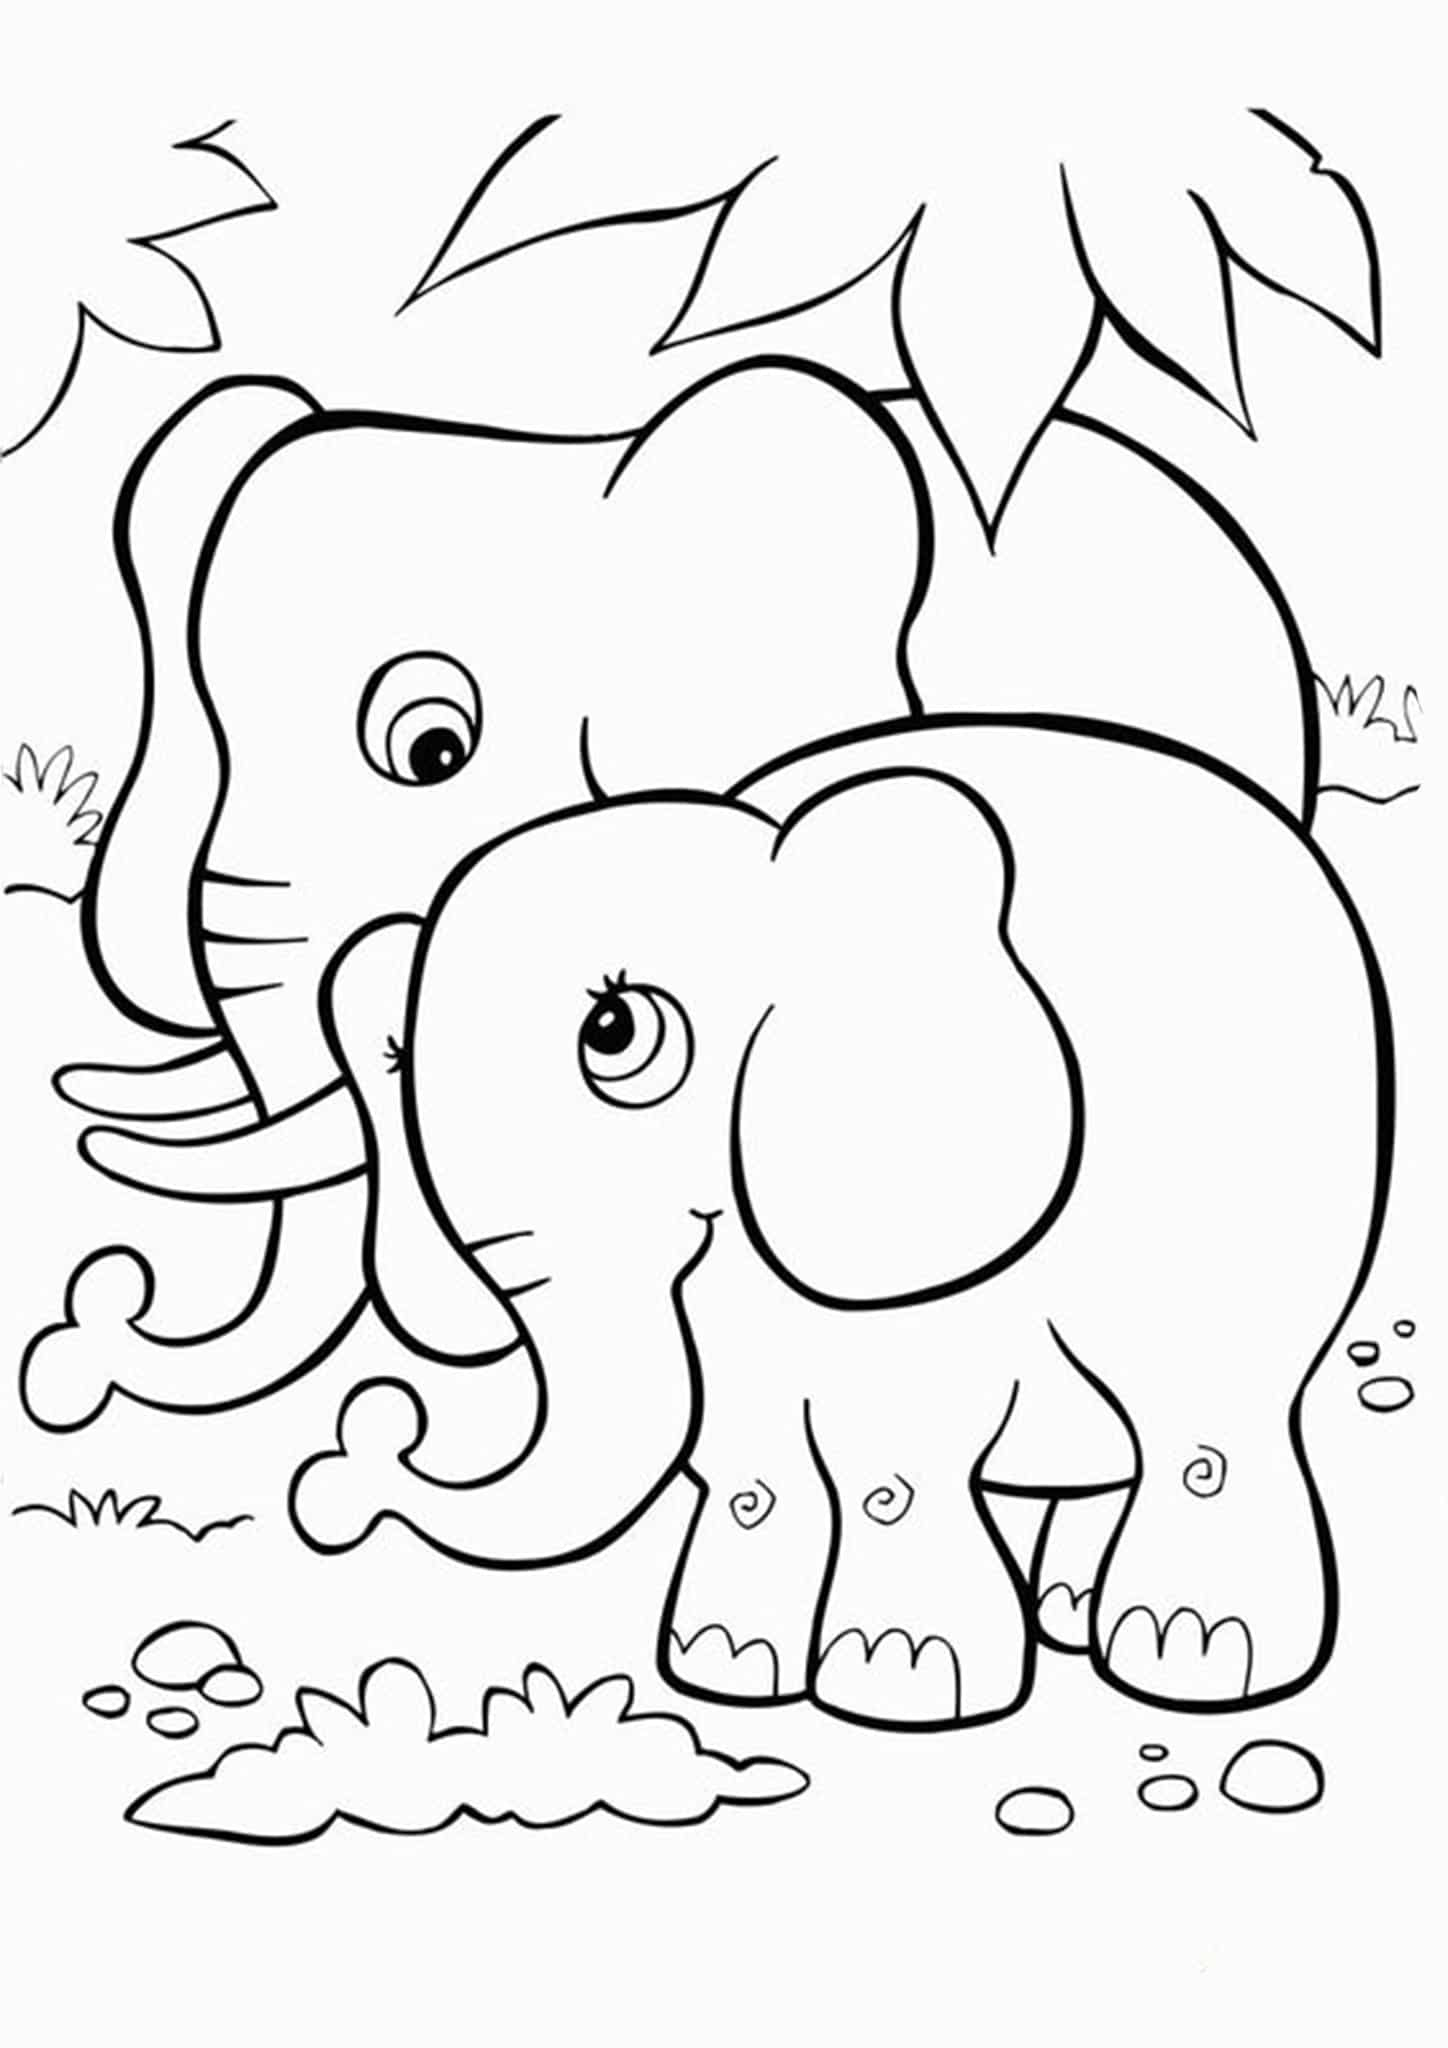 simple elephant coloring page baby elephant coloring pages to download and print for free page coloring simple elephant